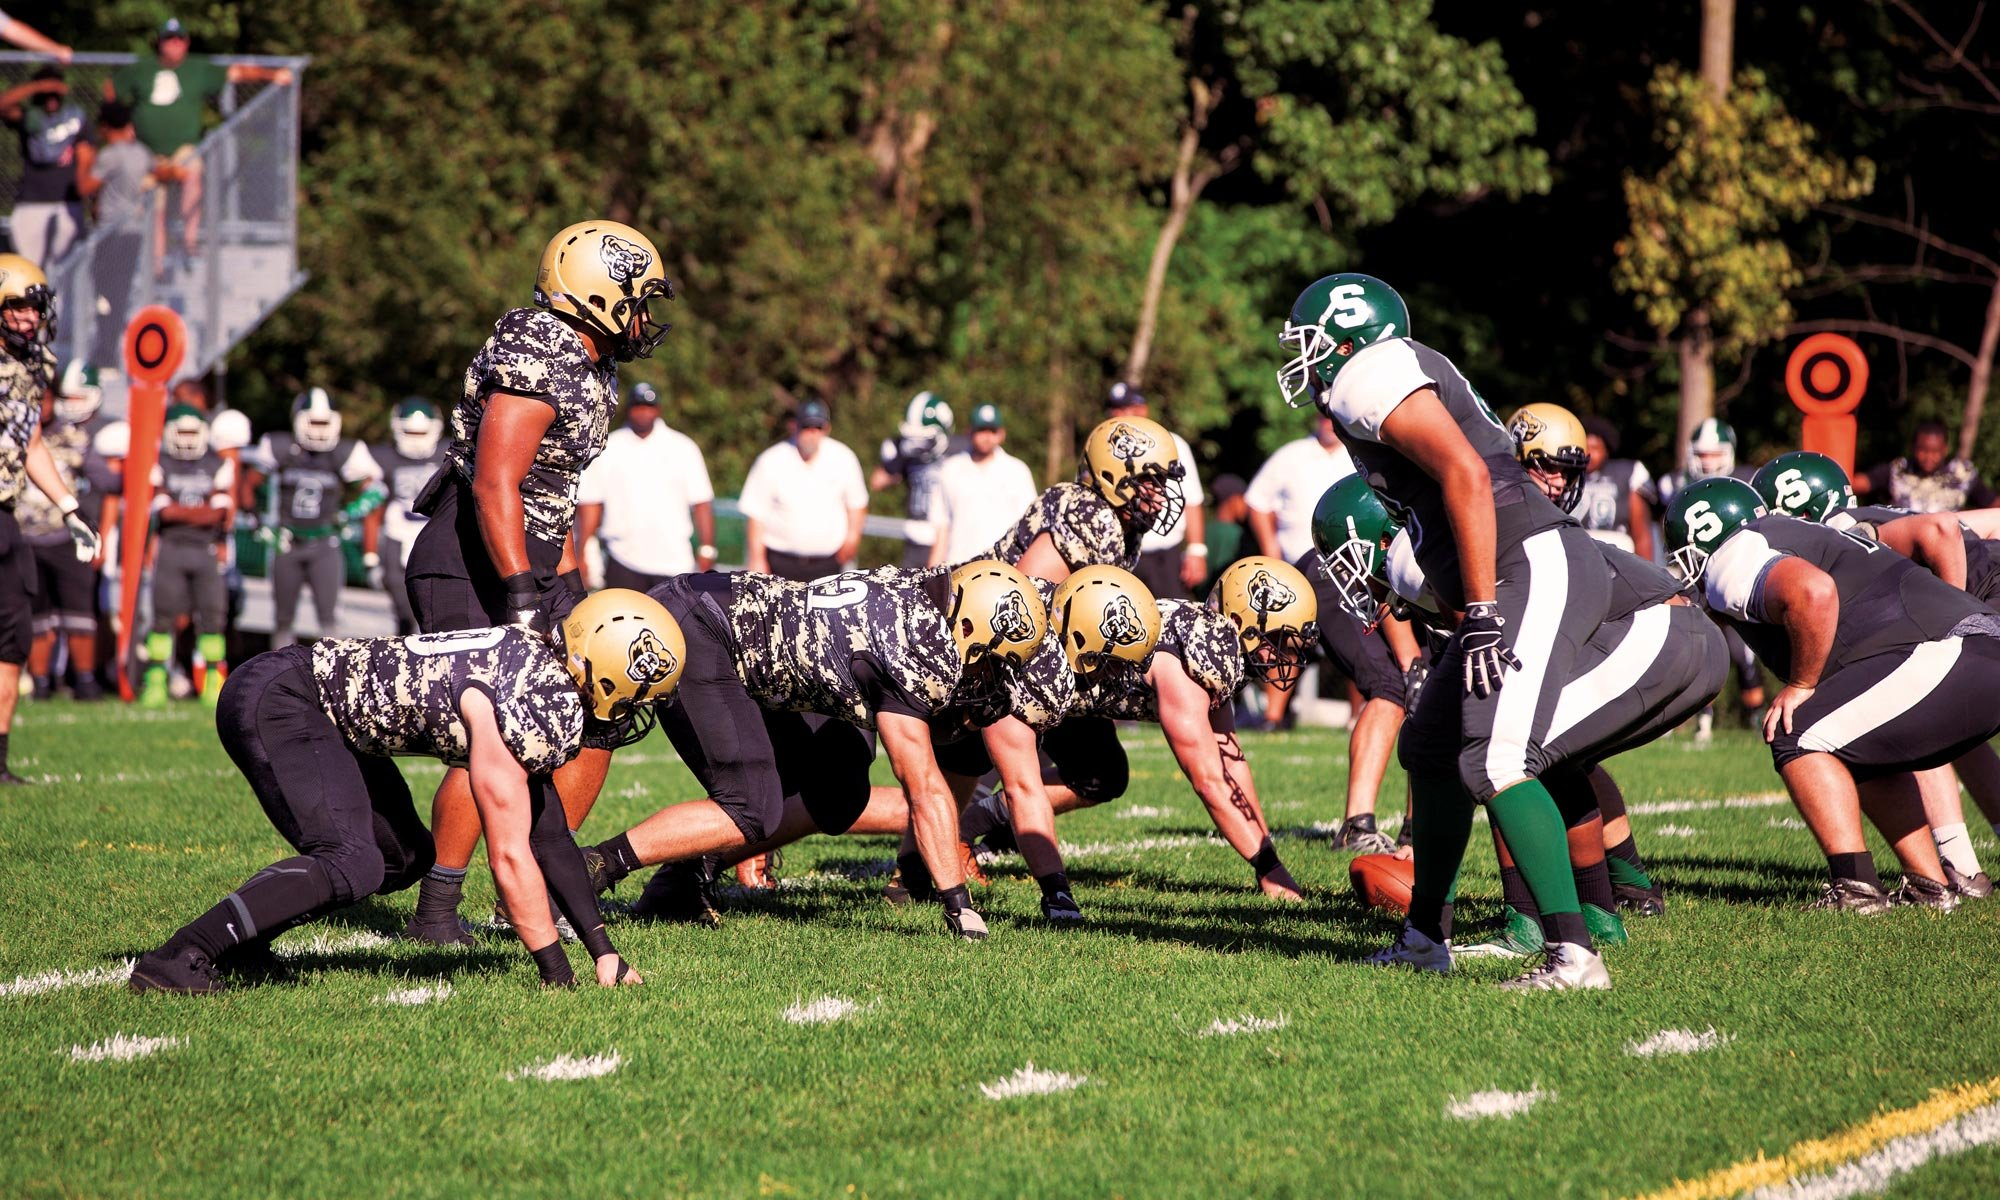 An action shot of Oakland University's club football team playing against Michigan State's club team